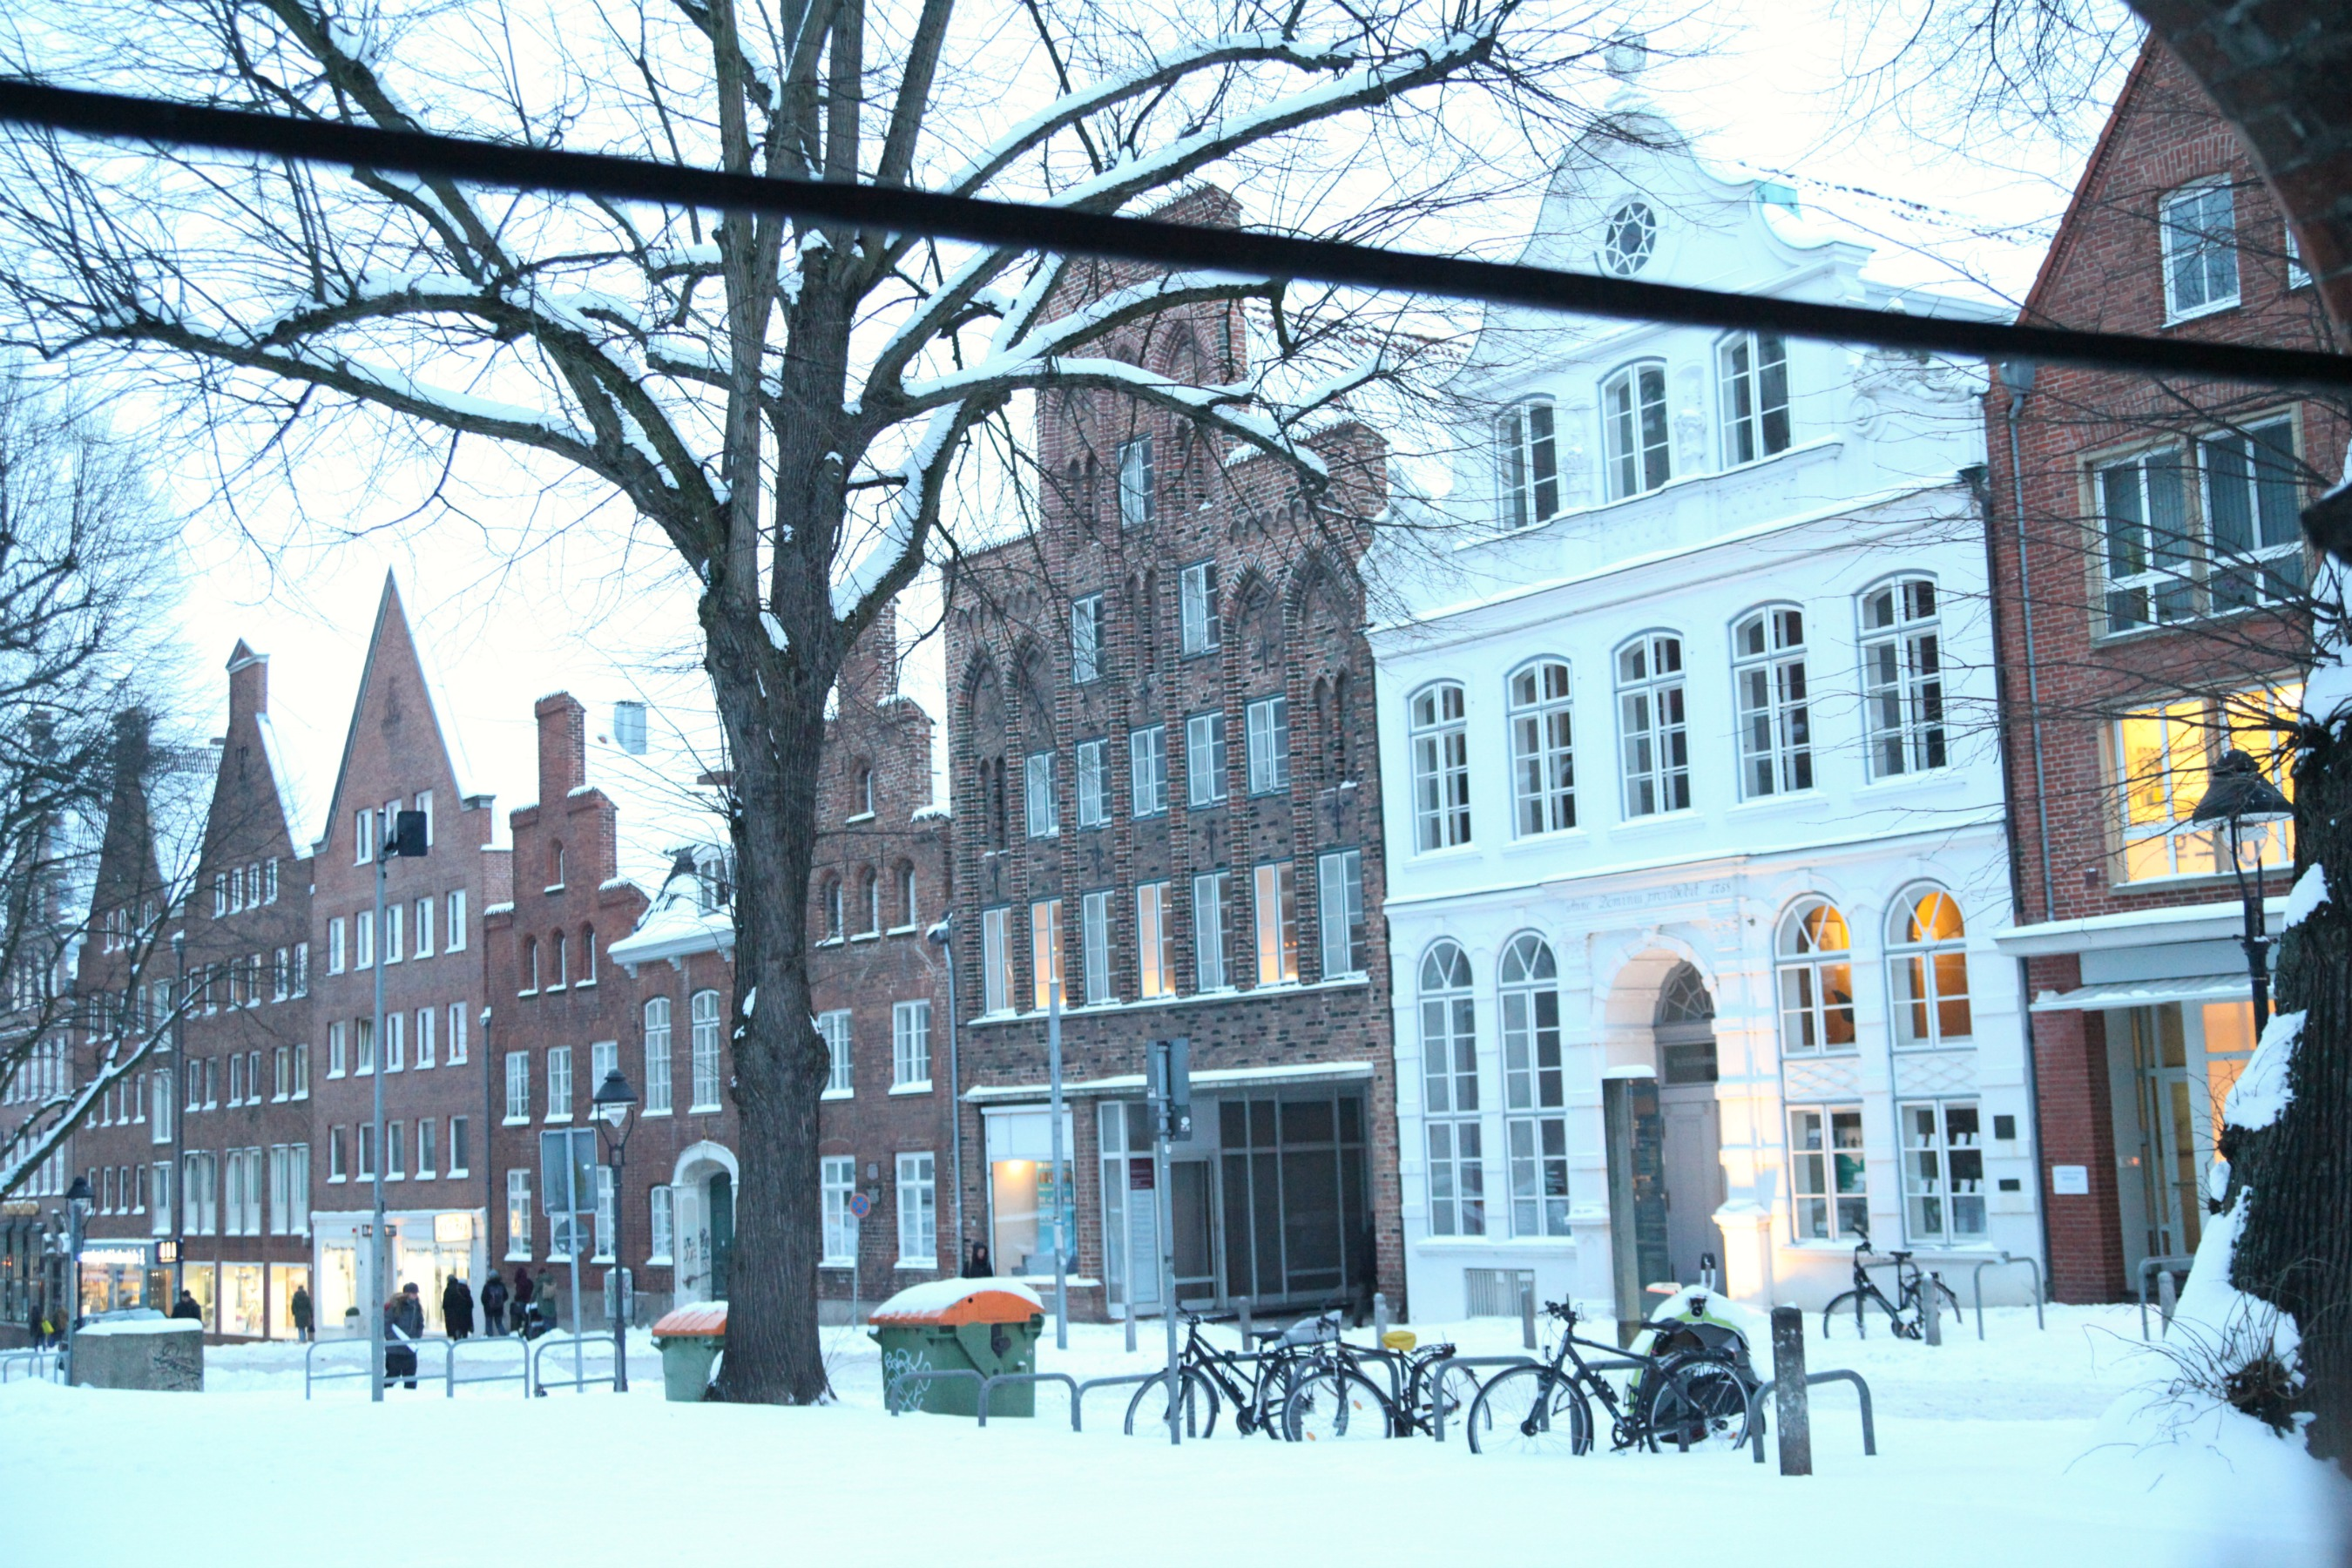 Snowy scenery in Lübeck